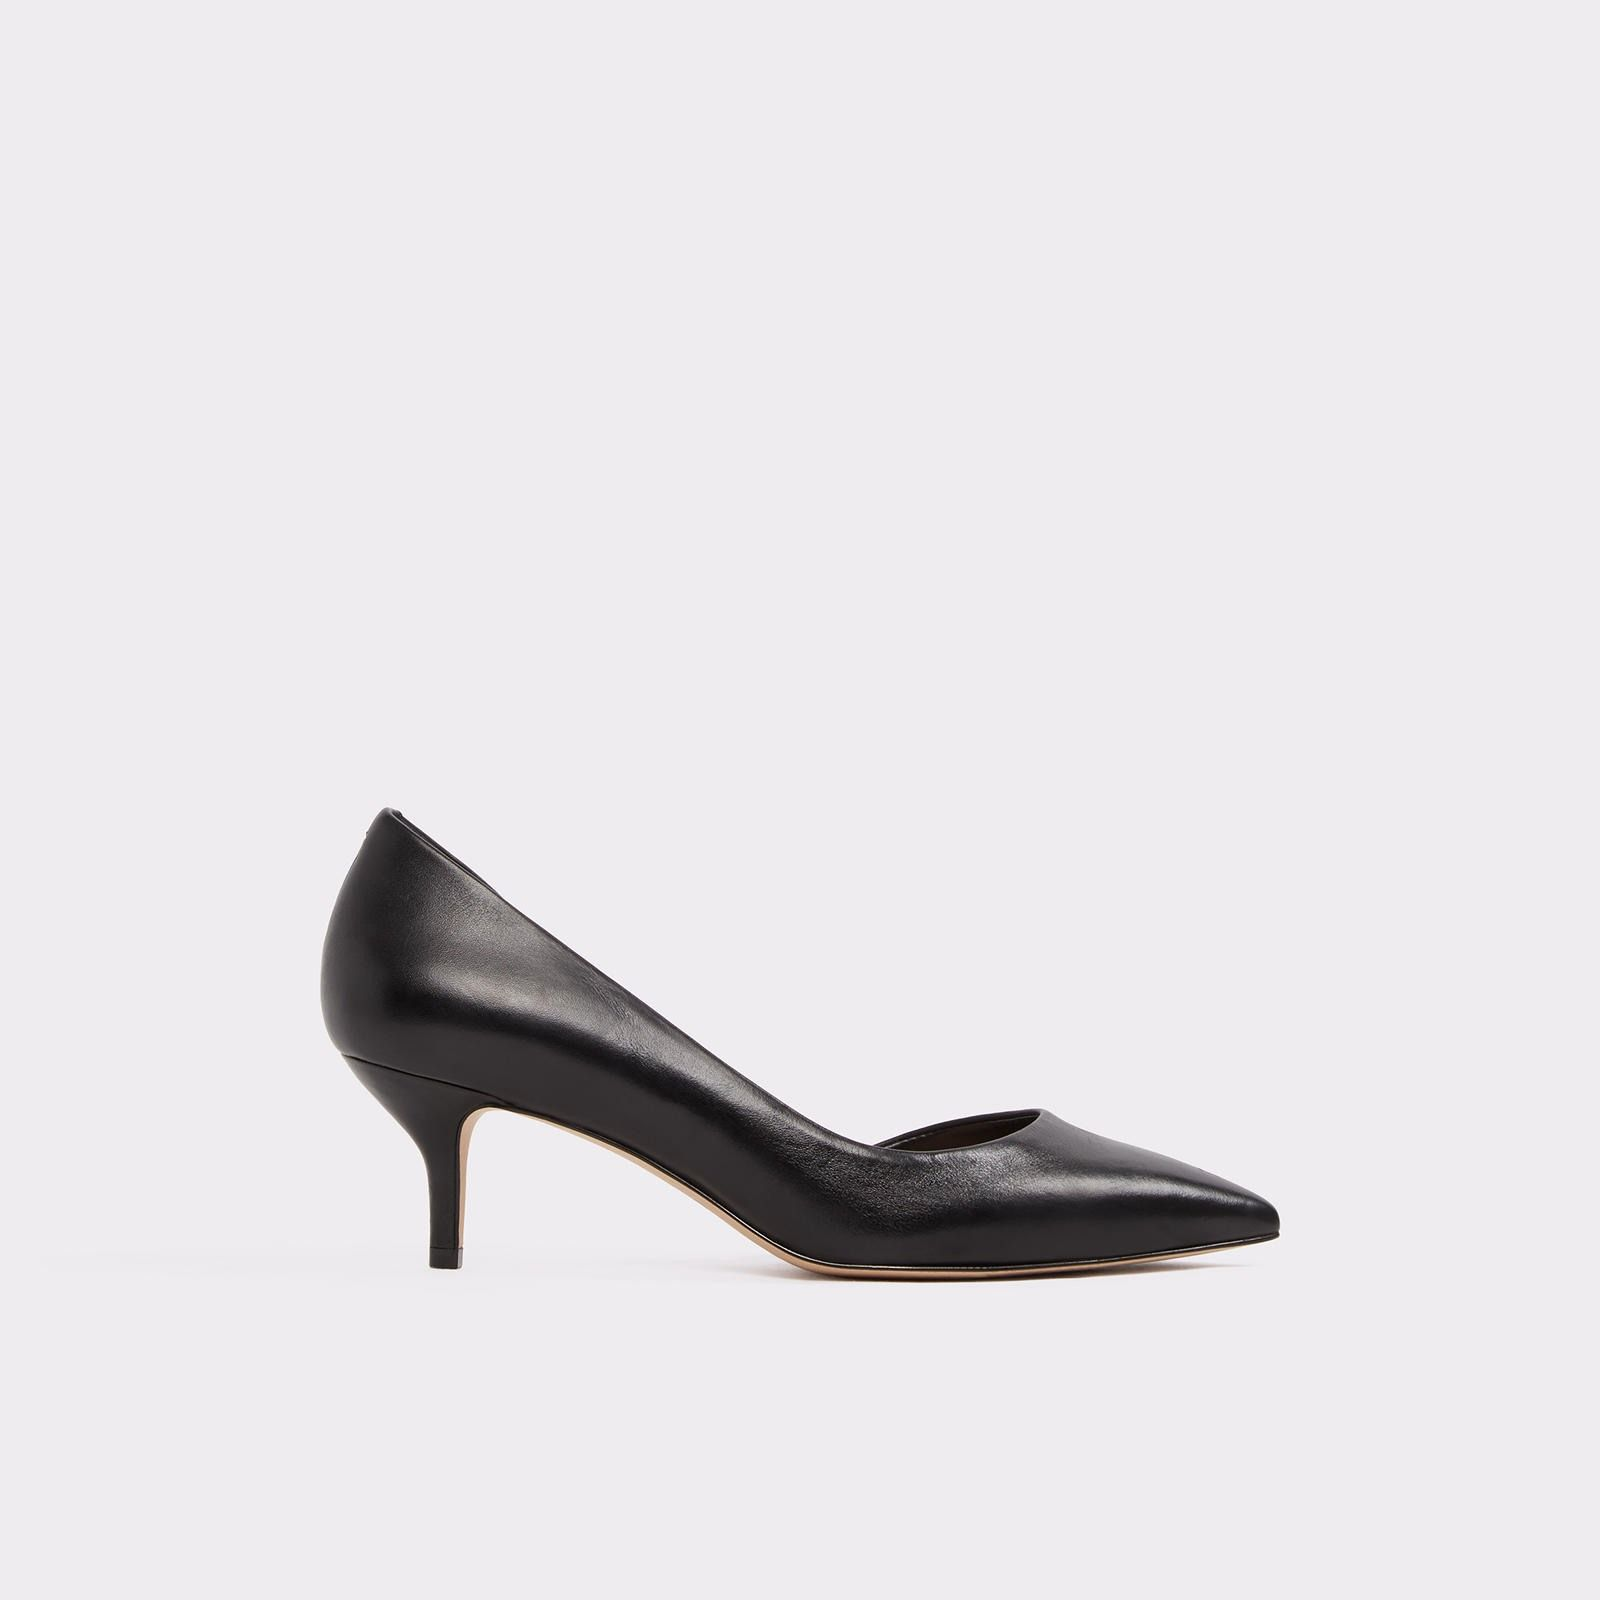 Nyderindra Black By Aldo Shoes Main Heels Leather Shoes Woman Aldo Shoes